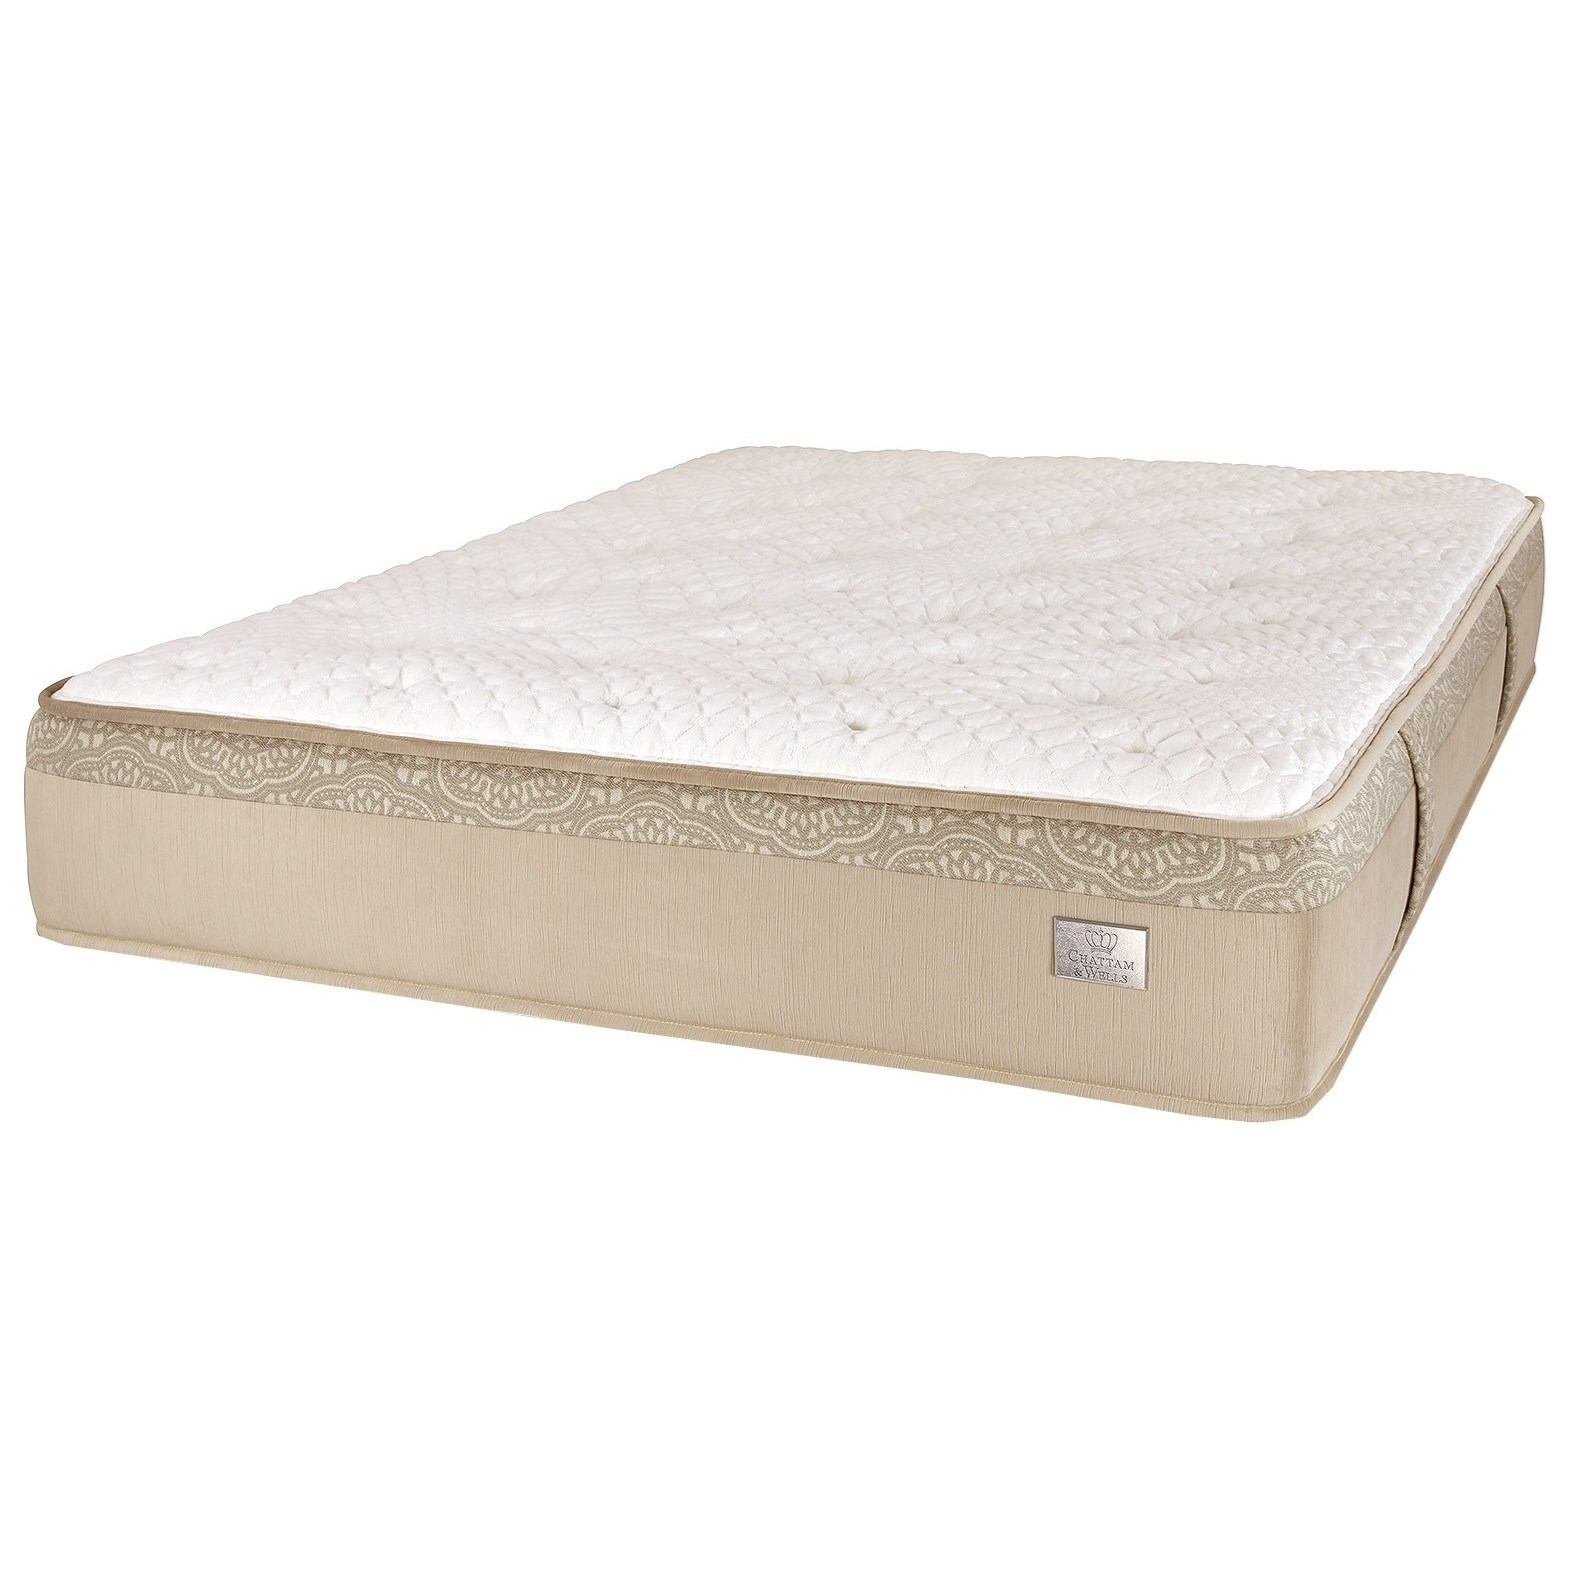 Elite Firm TT Full Firm Coil on Coil Mattress by Spring Air at Steger's Furniture